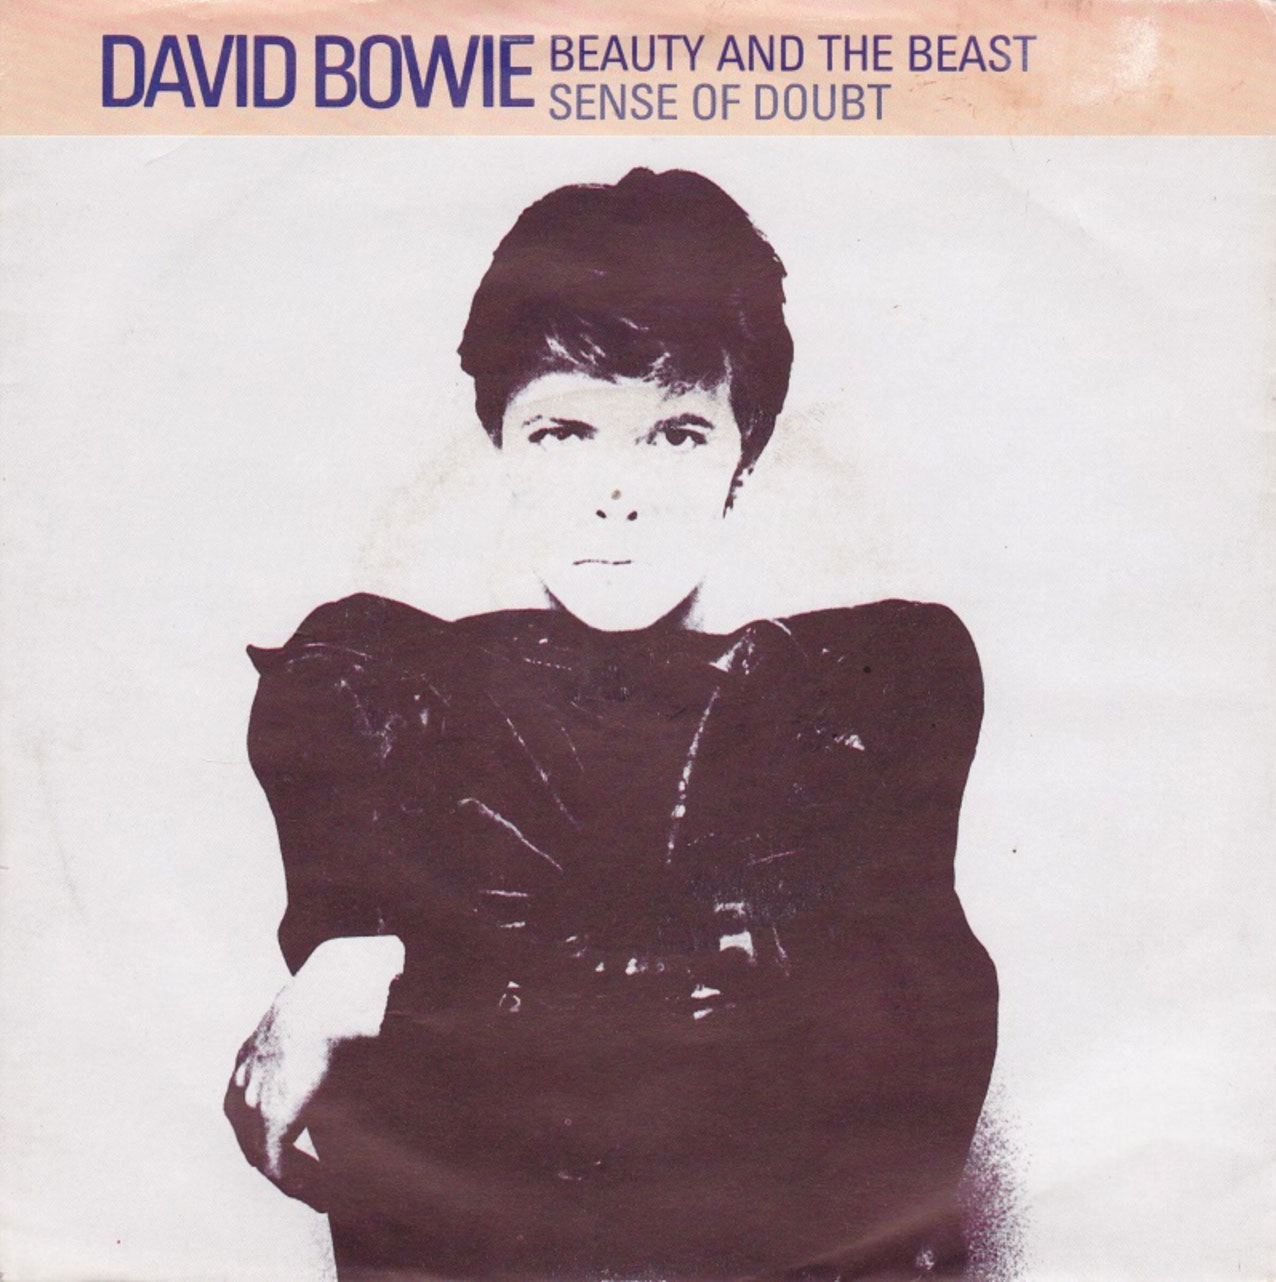 David Bowie - Beauty And The Beast - UK Reissue single front cover